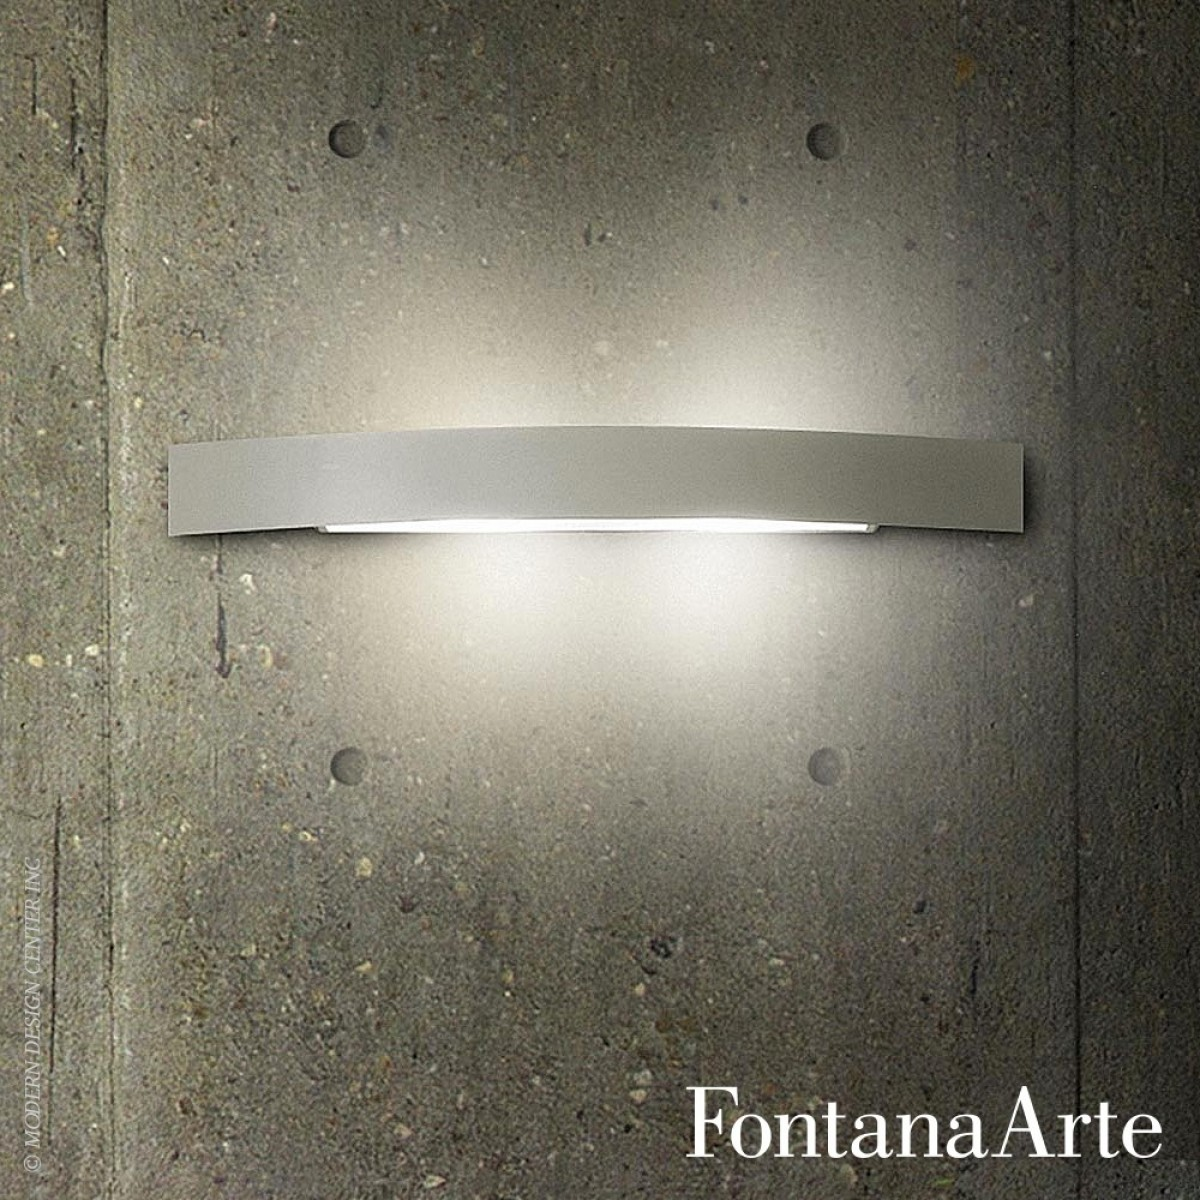 fontanaarte riga 36 inox wall lamp outlet. Black Bedroom Furniture Sets. Home Design Ideas